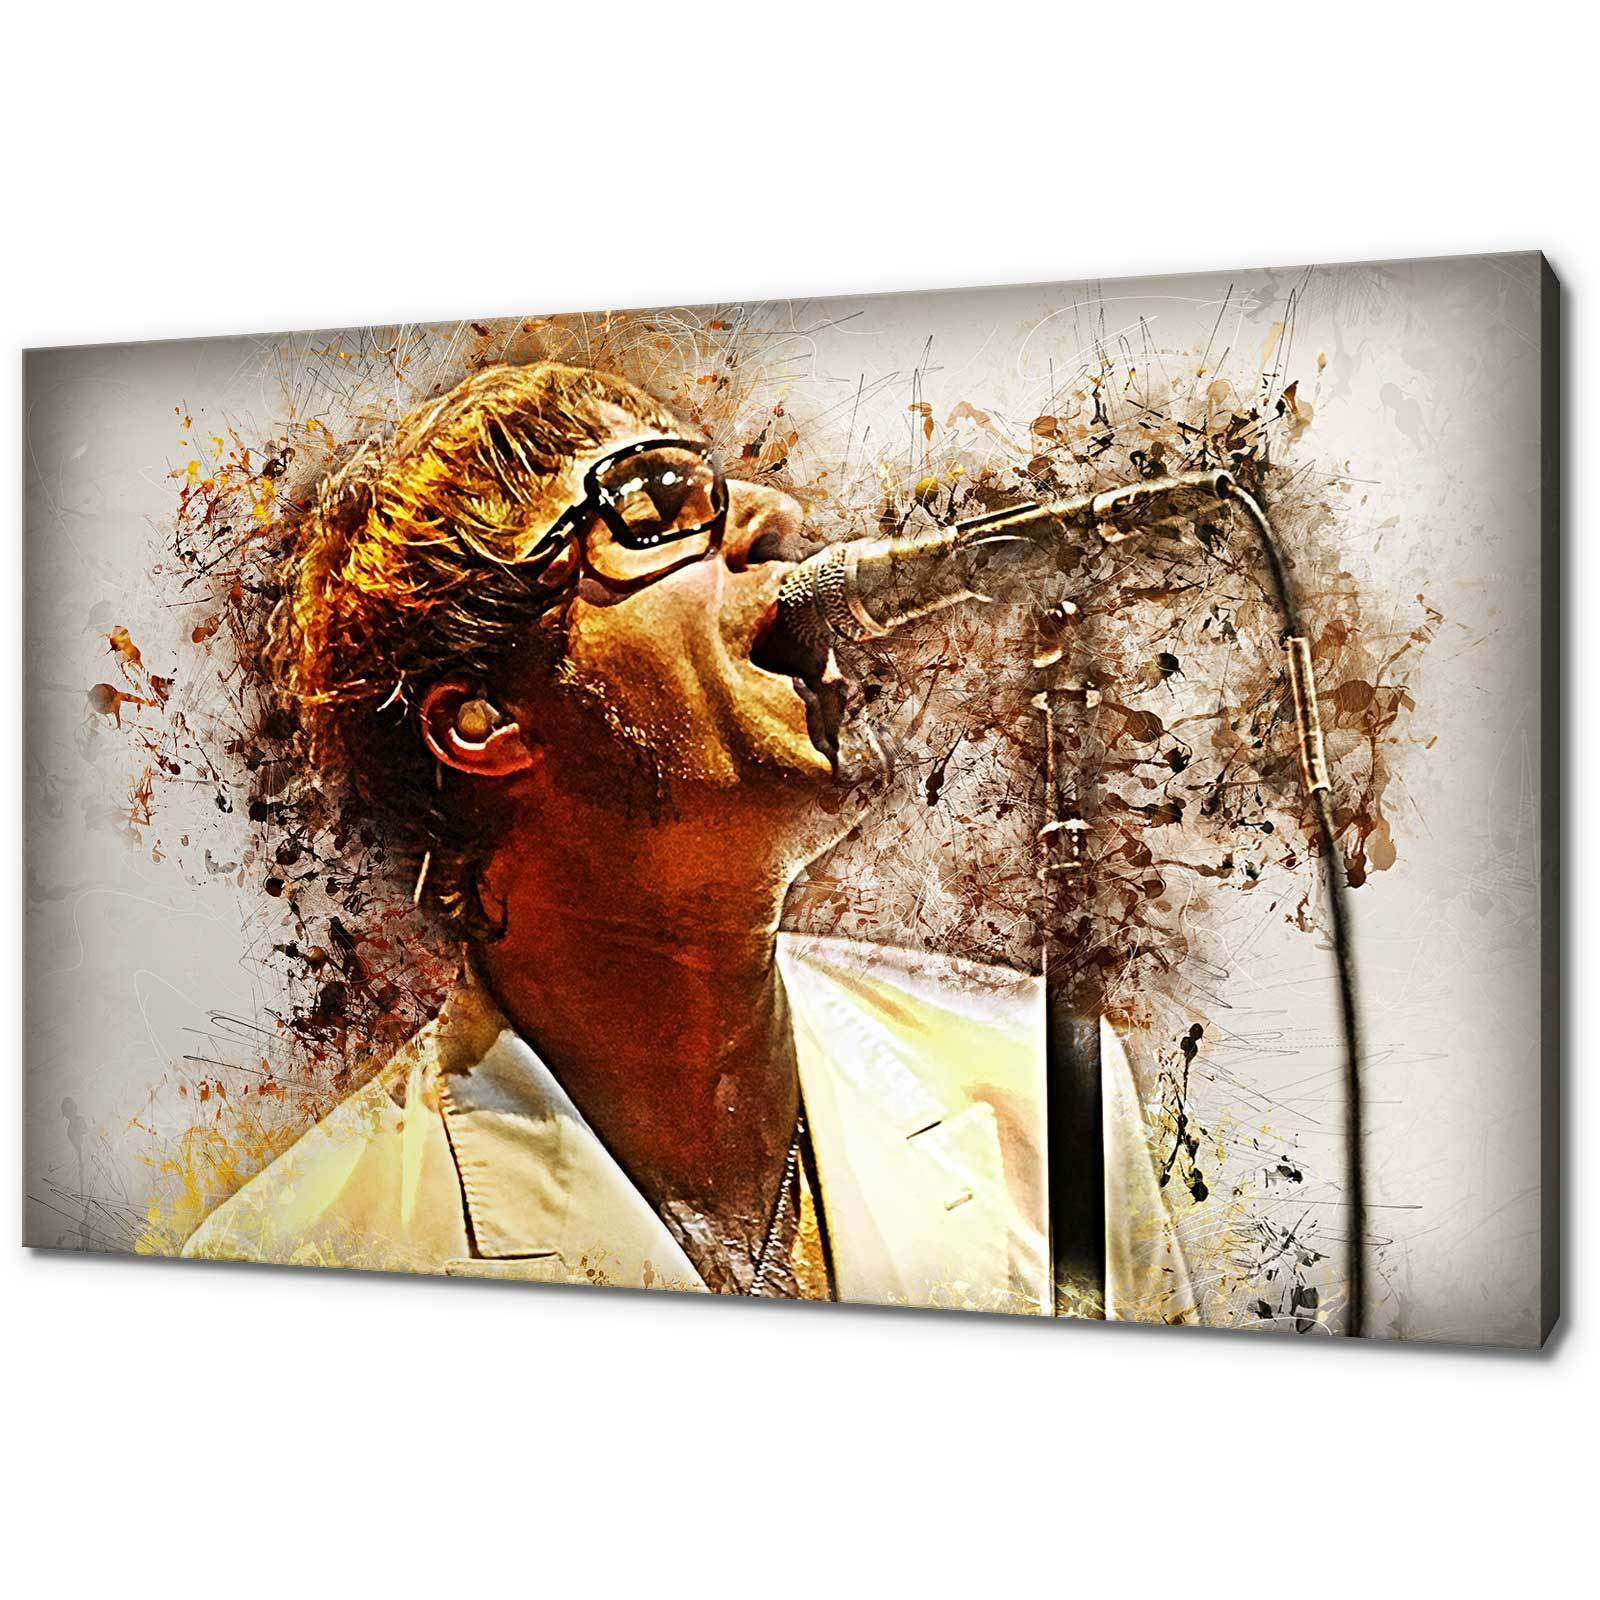 OASIS LIAM GALLAGHER CANVAS PICTURE PRINT GRUNGE WALL ART FREE FAST DELIVERY